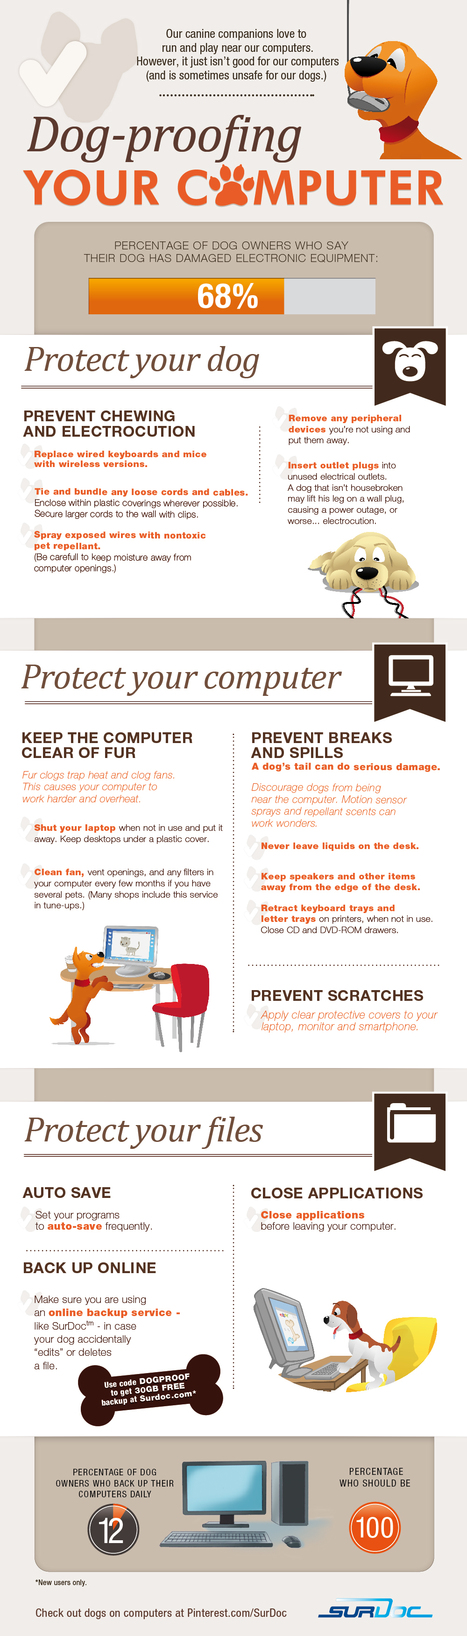 Dog-Proofing Your Computer [INFOGRAPHIC] | All things Social & Tech | Scoop.it